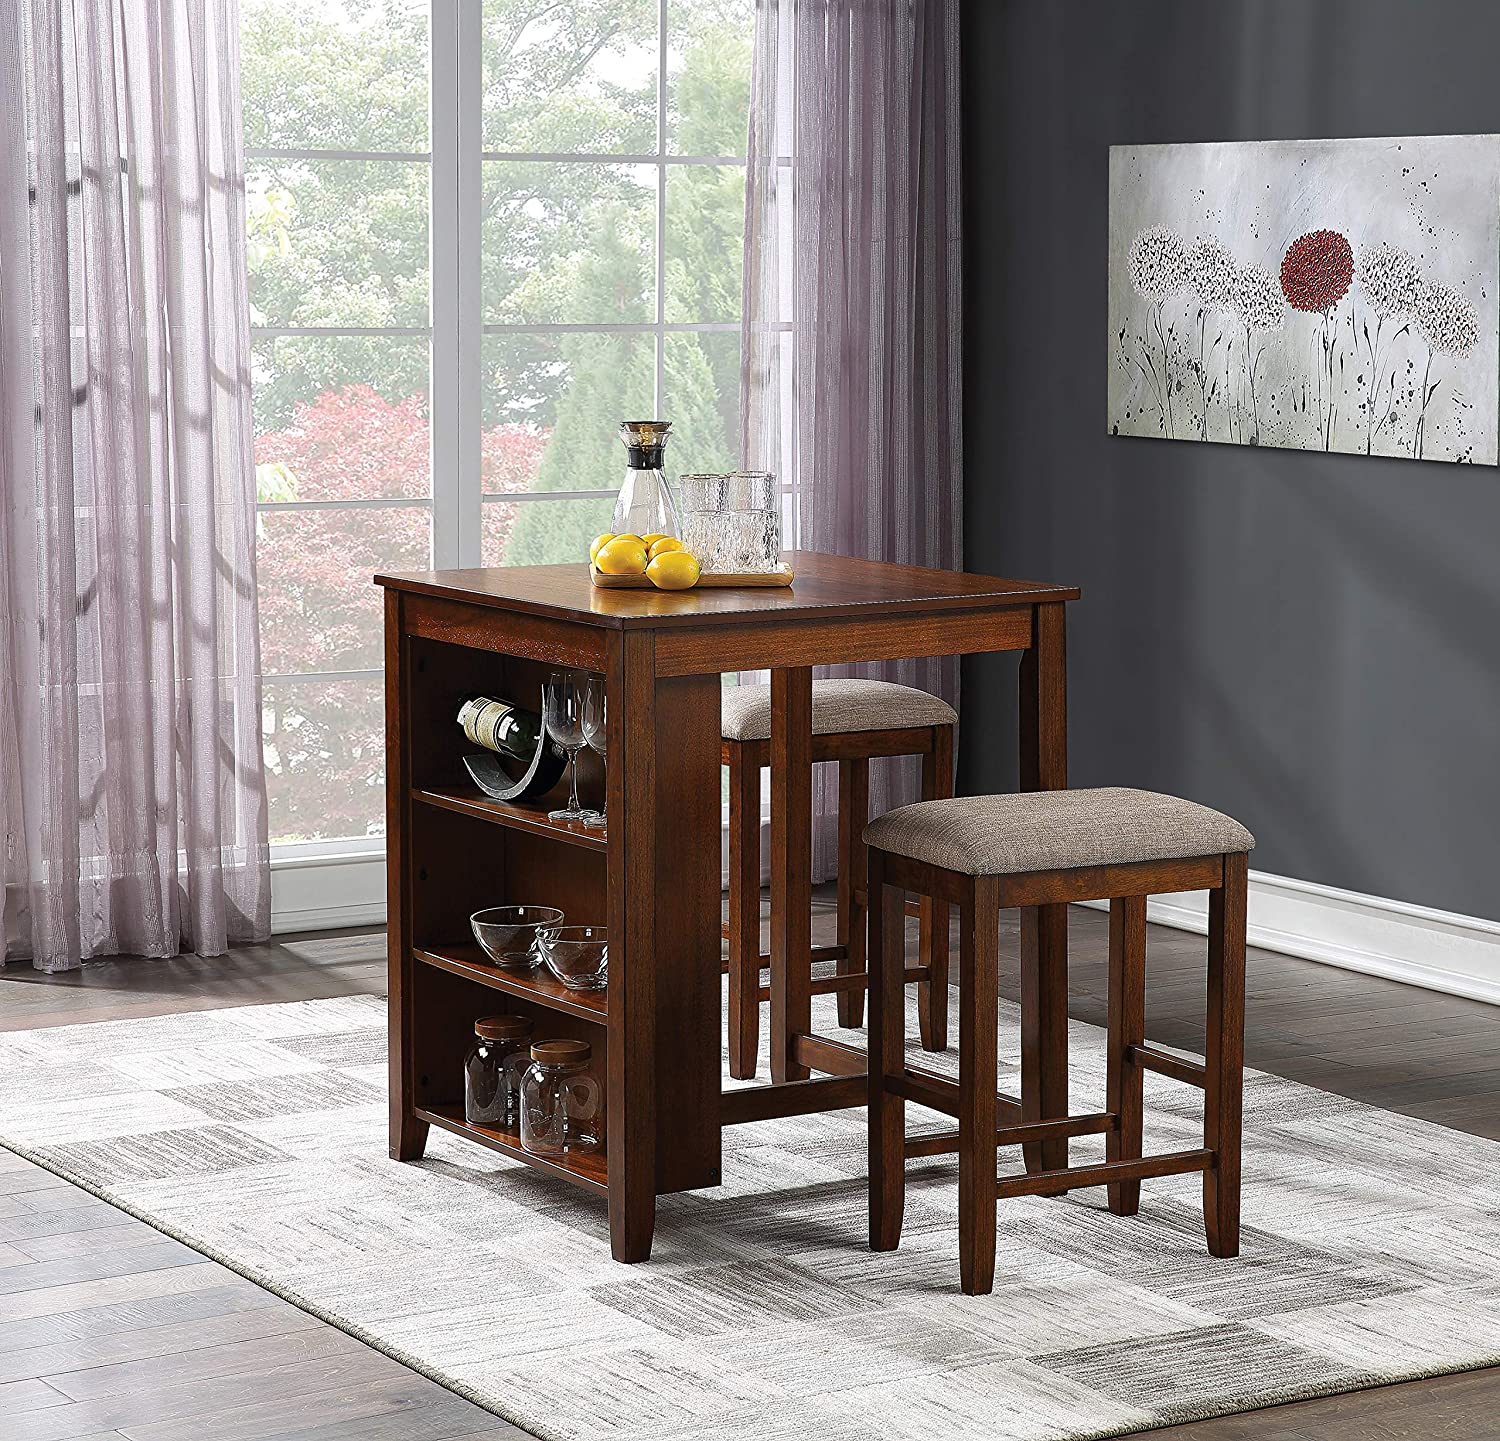 OSP Home Furnishings Regal 3-Piece Bar Height Dining Set, Walnut